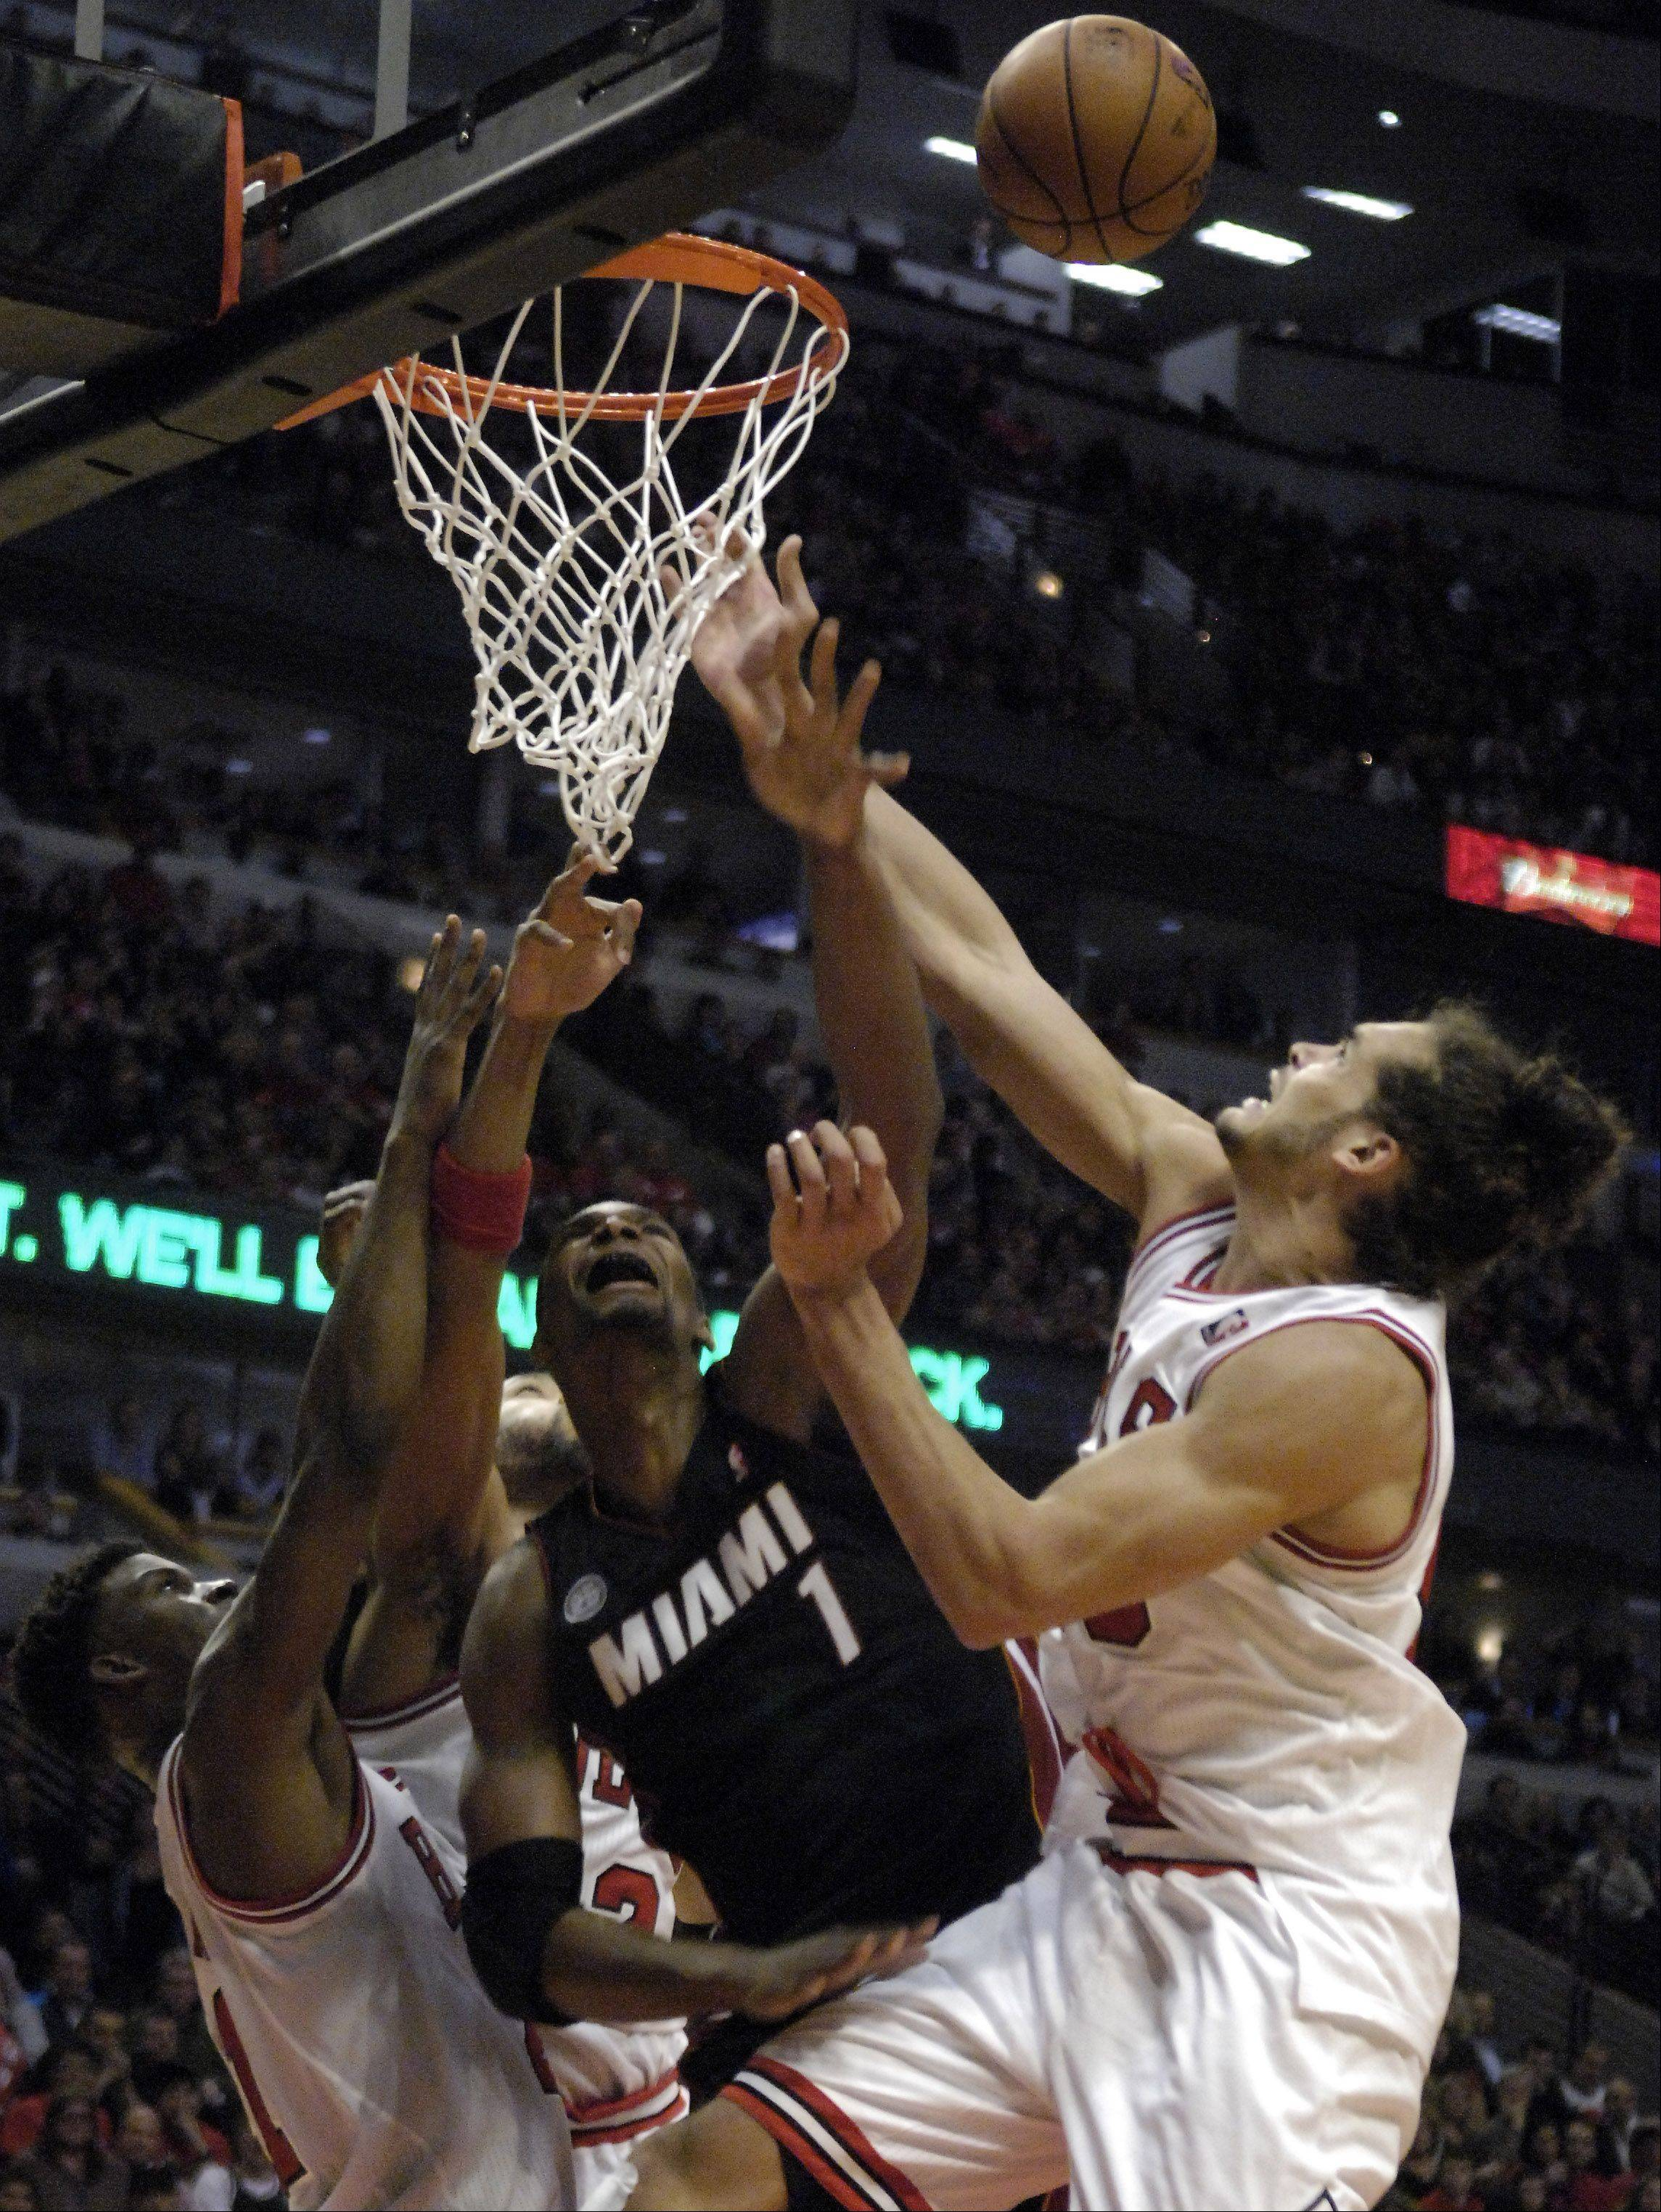 Bulls center Joakim Noah was named to the NBA's all-defensive first team Monday.